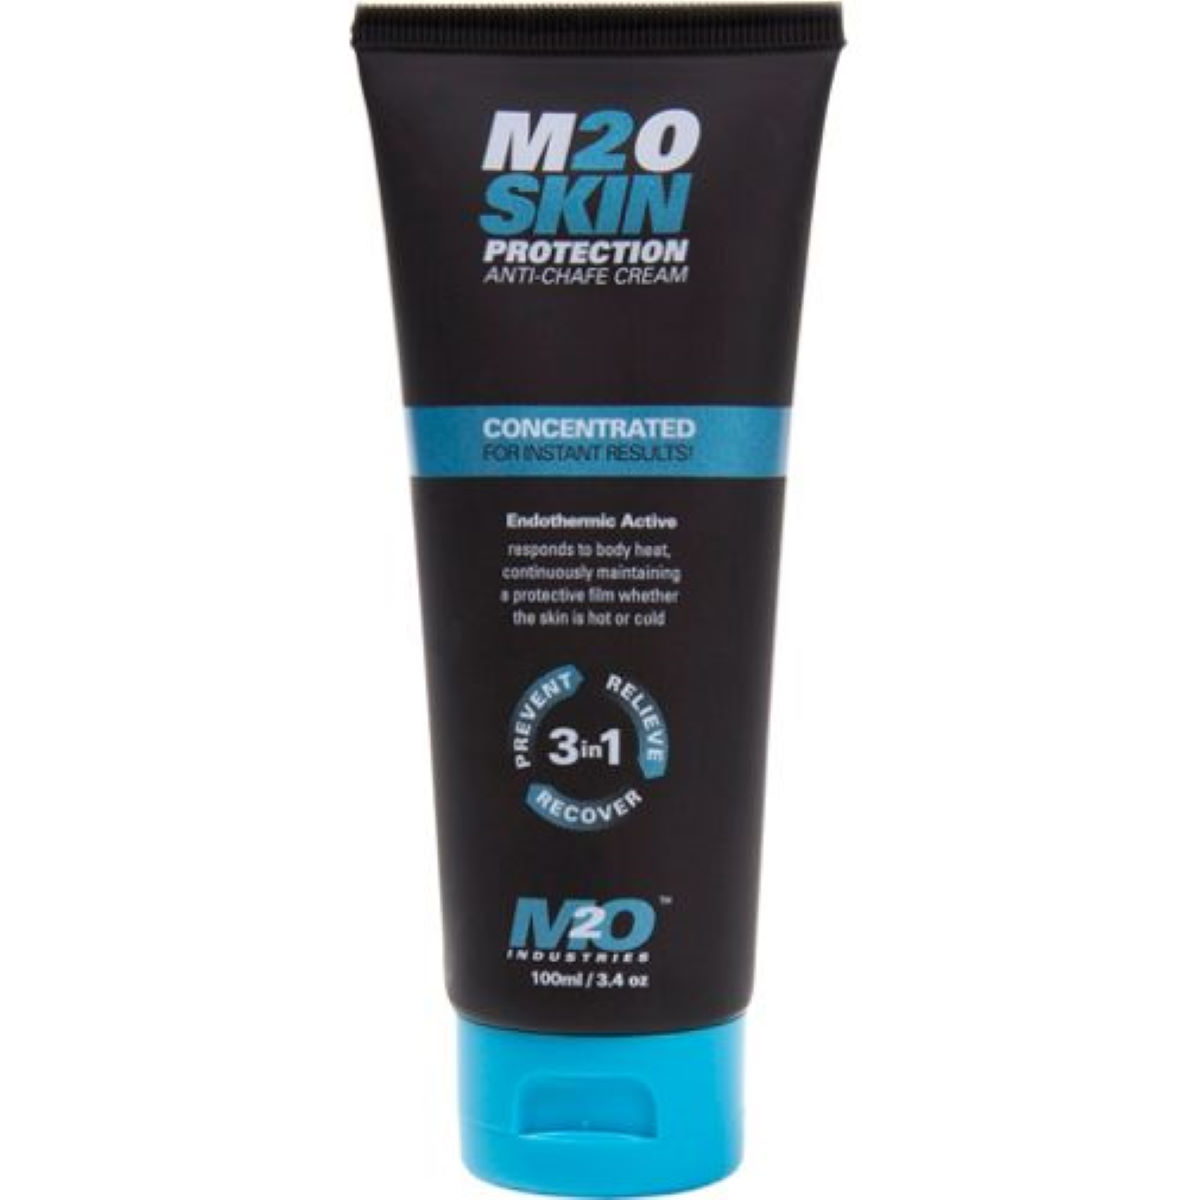 M20 3 In 1 Anti-Chafe Cream - Cremas para badana